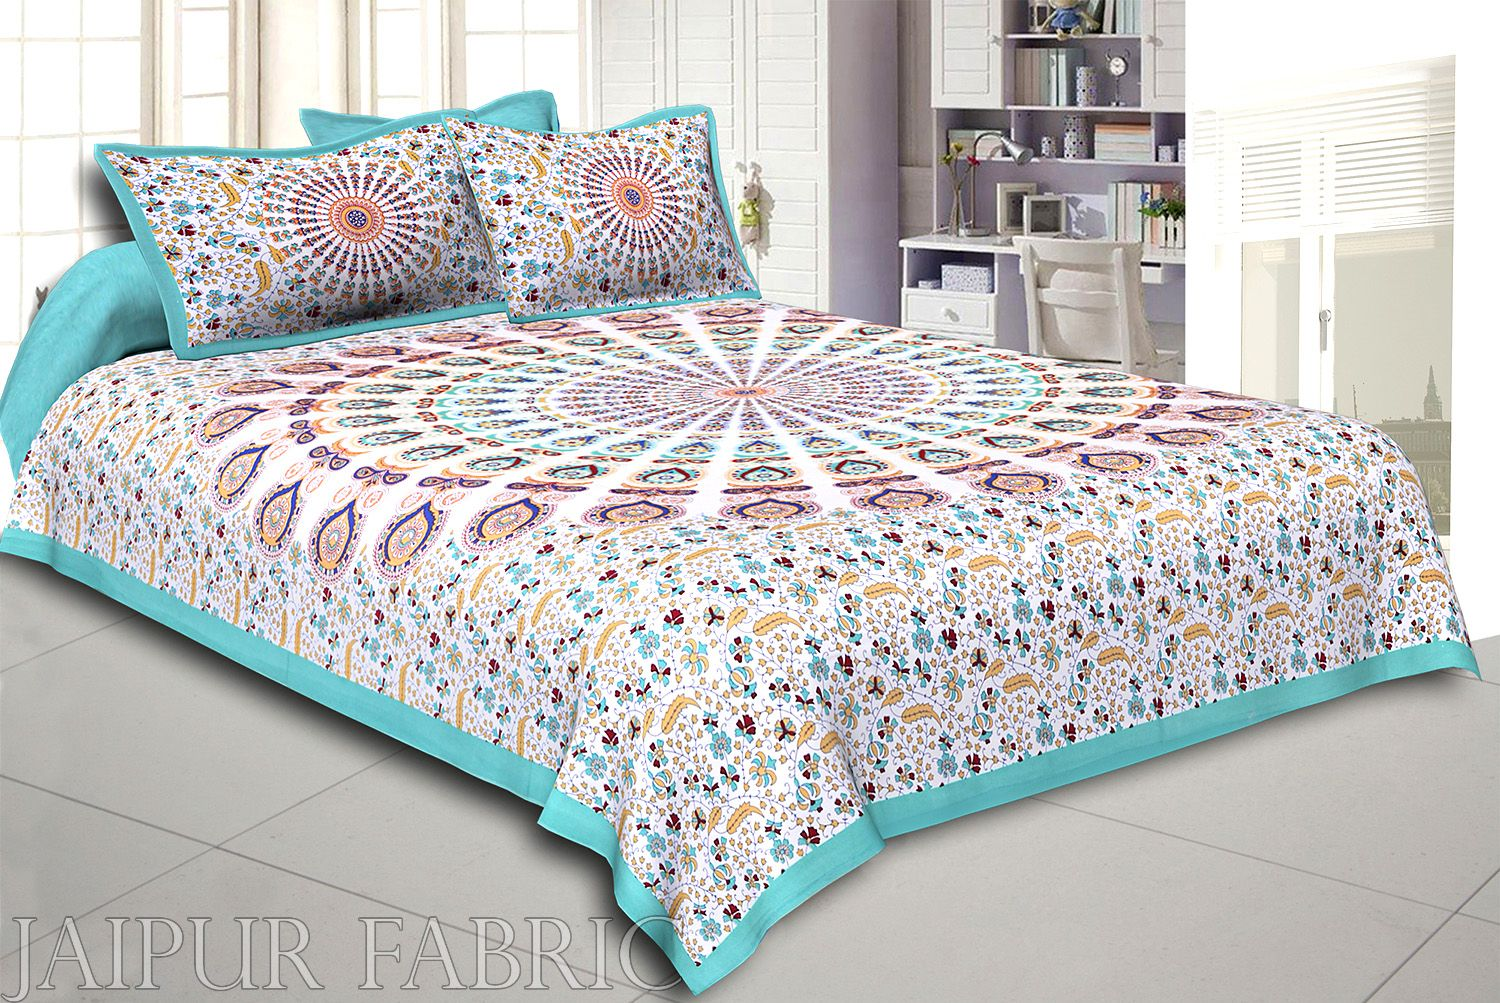 Green Kalangi Printed Cotton Double Bed Sheet